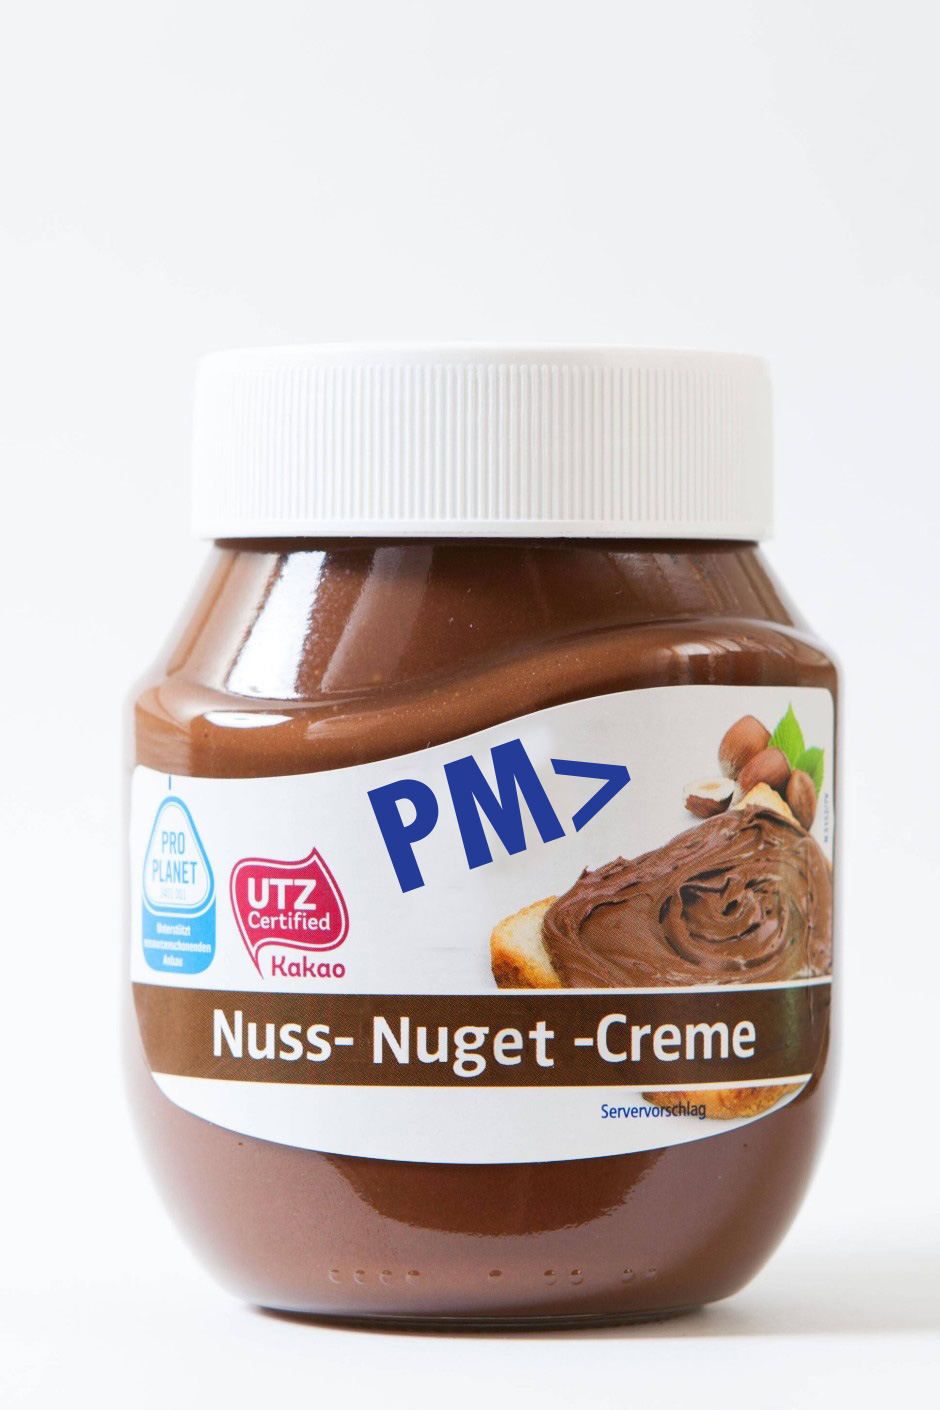 Nuget-Creme im Package Manager